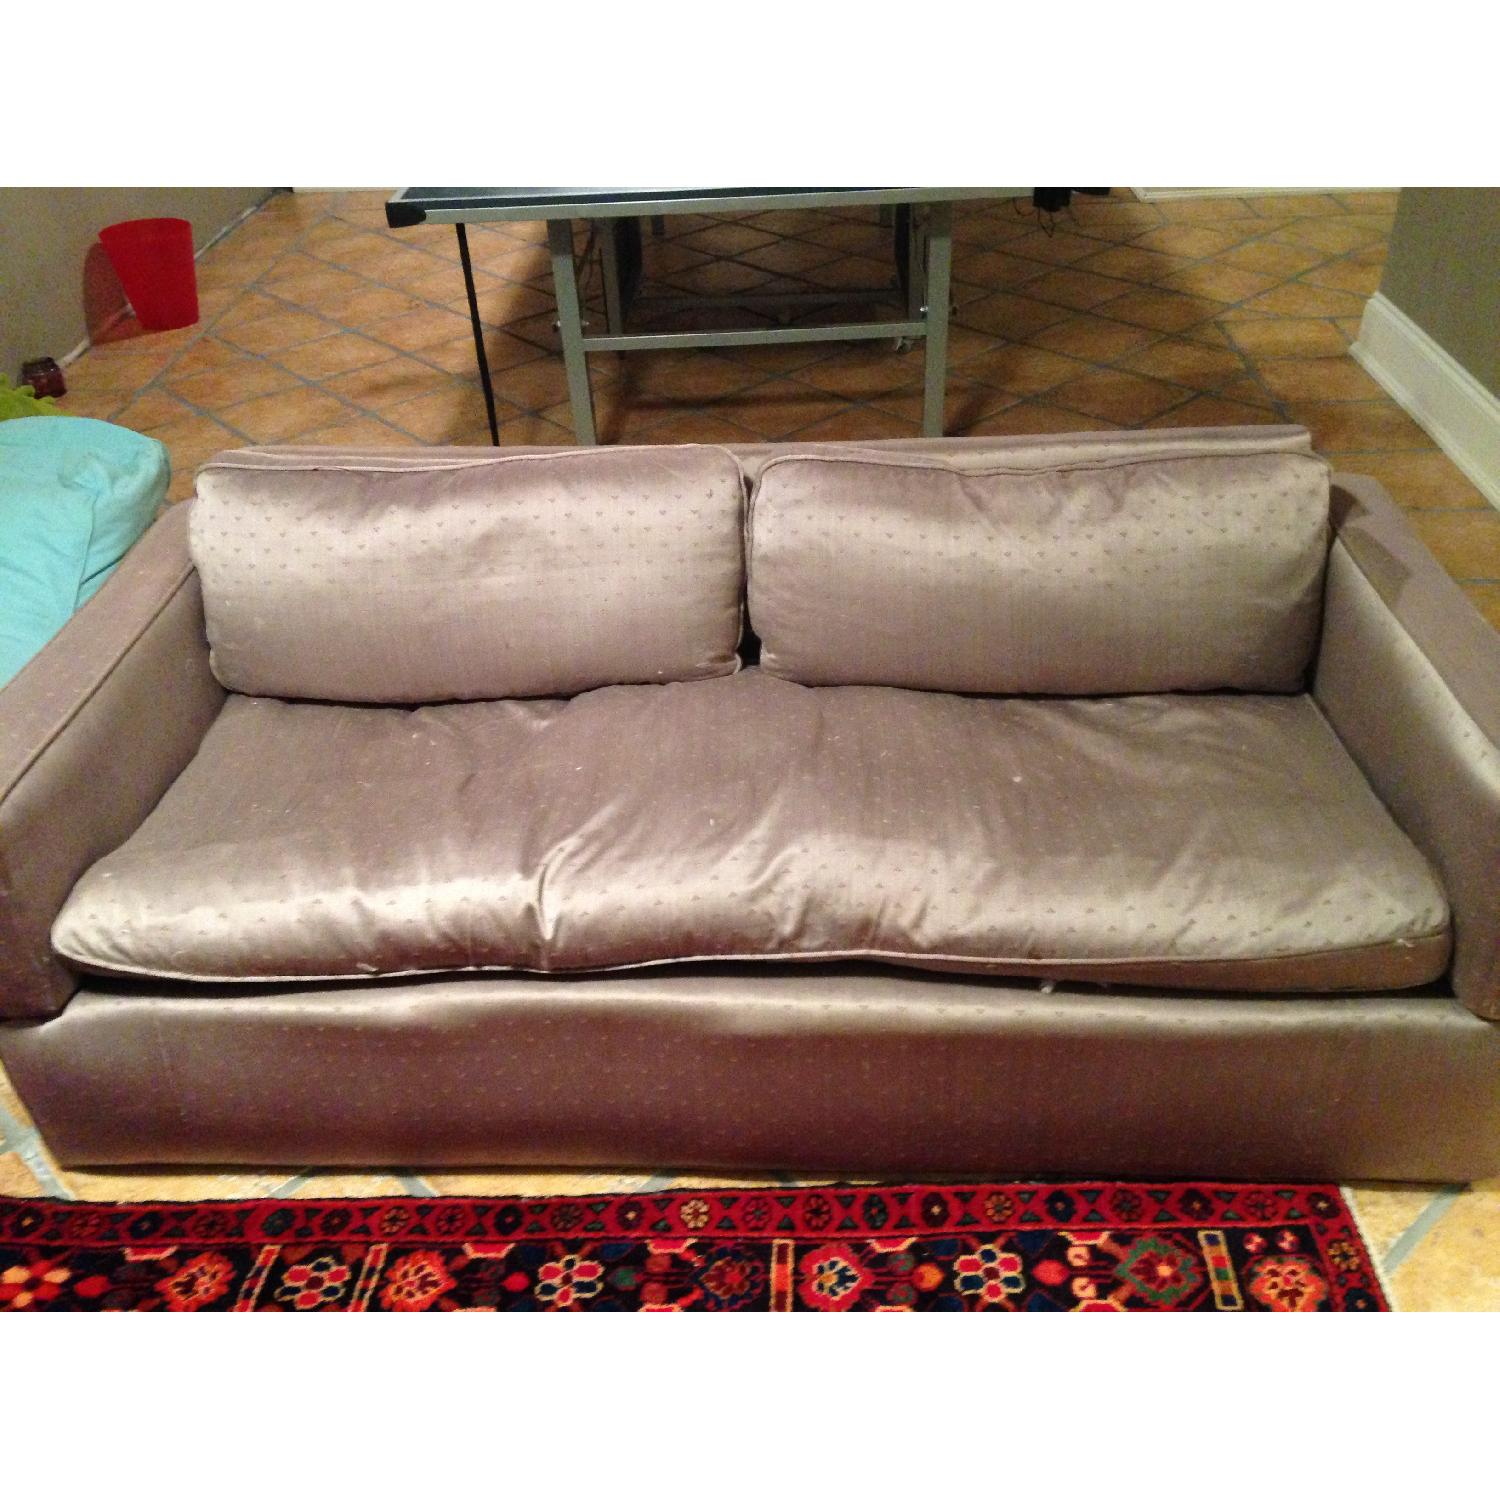 ... Down Filled Sleeper Sofa W/ French Provence Upholstery 0 ...